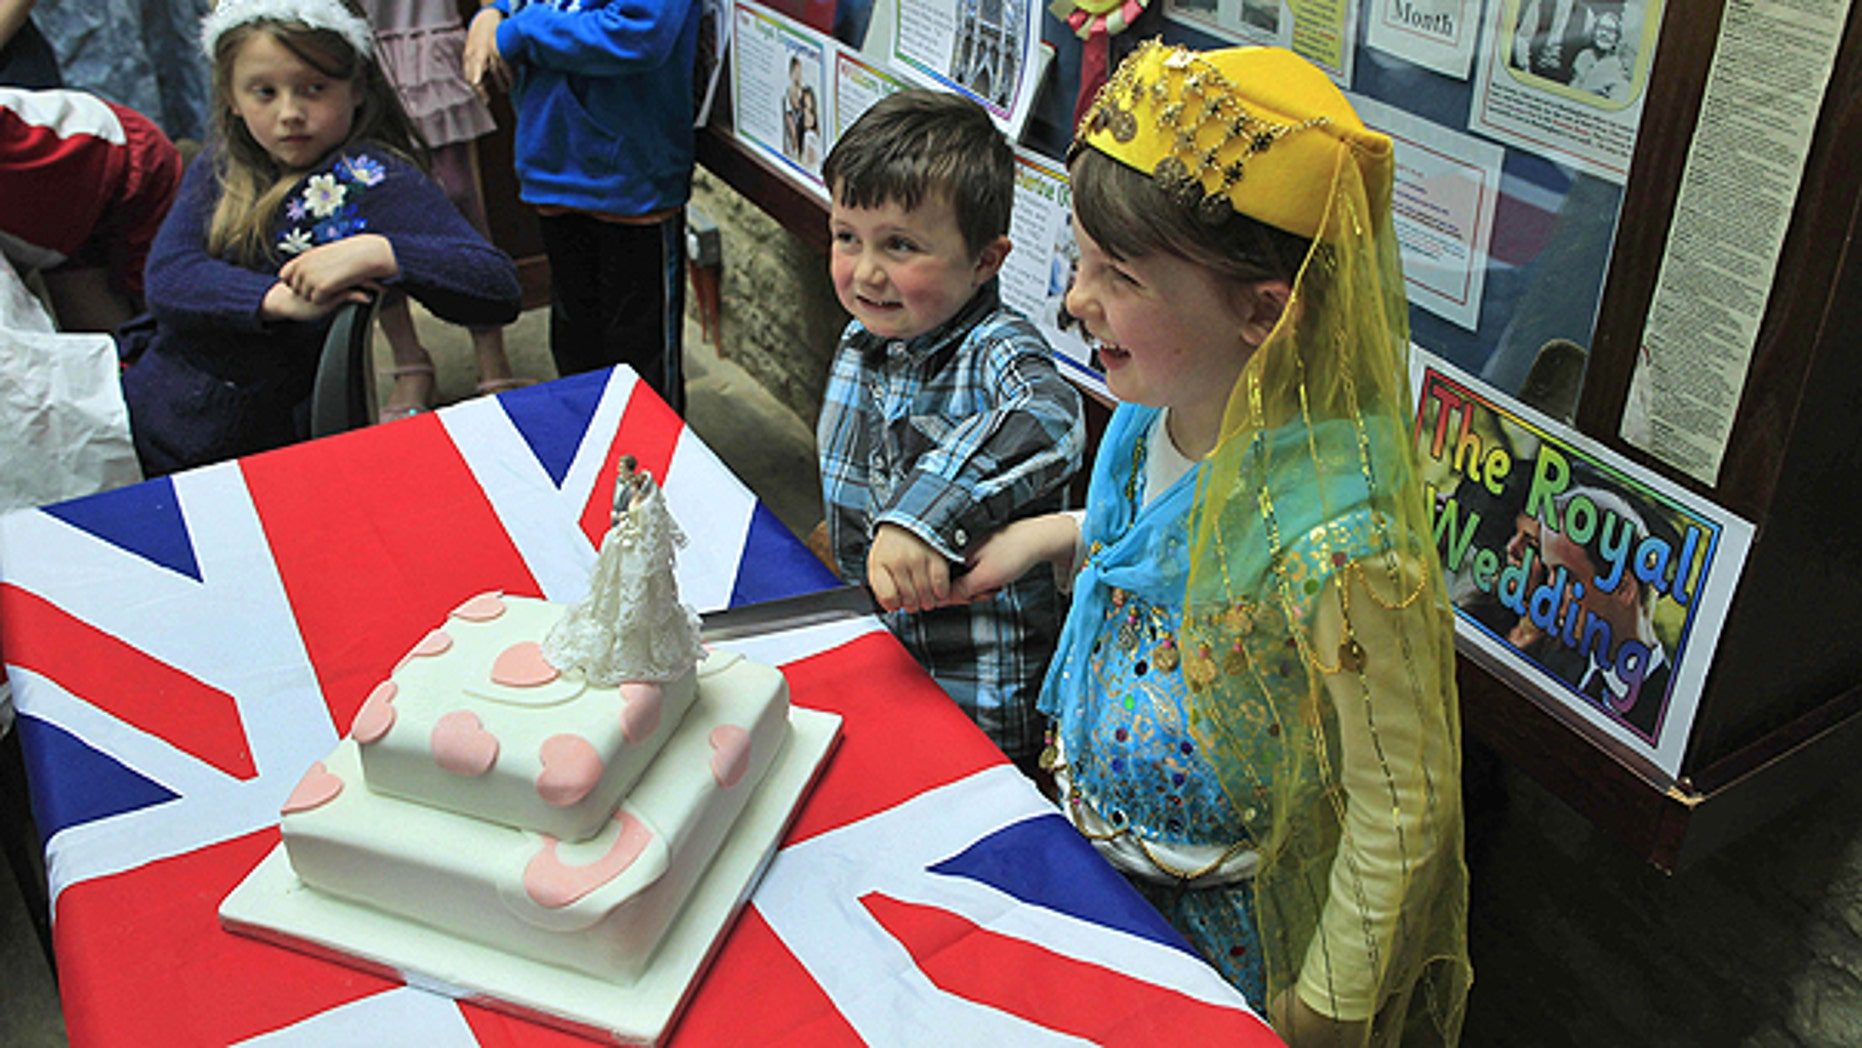 April 26: Local children Gabriel Perry, second right, aged four, and Caitlin Argles-Clarke, right, aged five, pose for photographs to cut the wedding cake after winning the best costumes awards during a 'street' party to mark the royal wedding in the town of Buckingham, England.